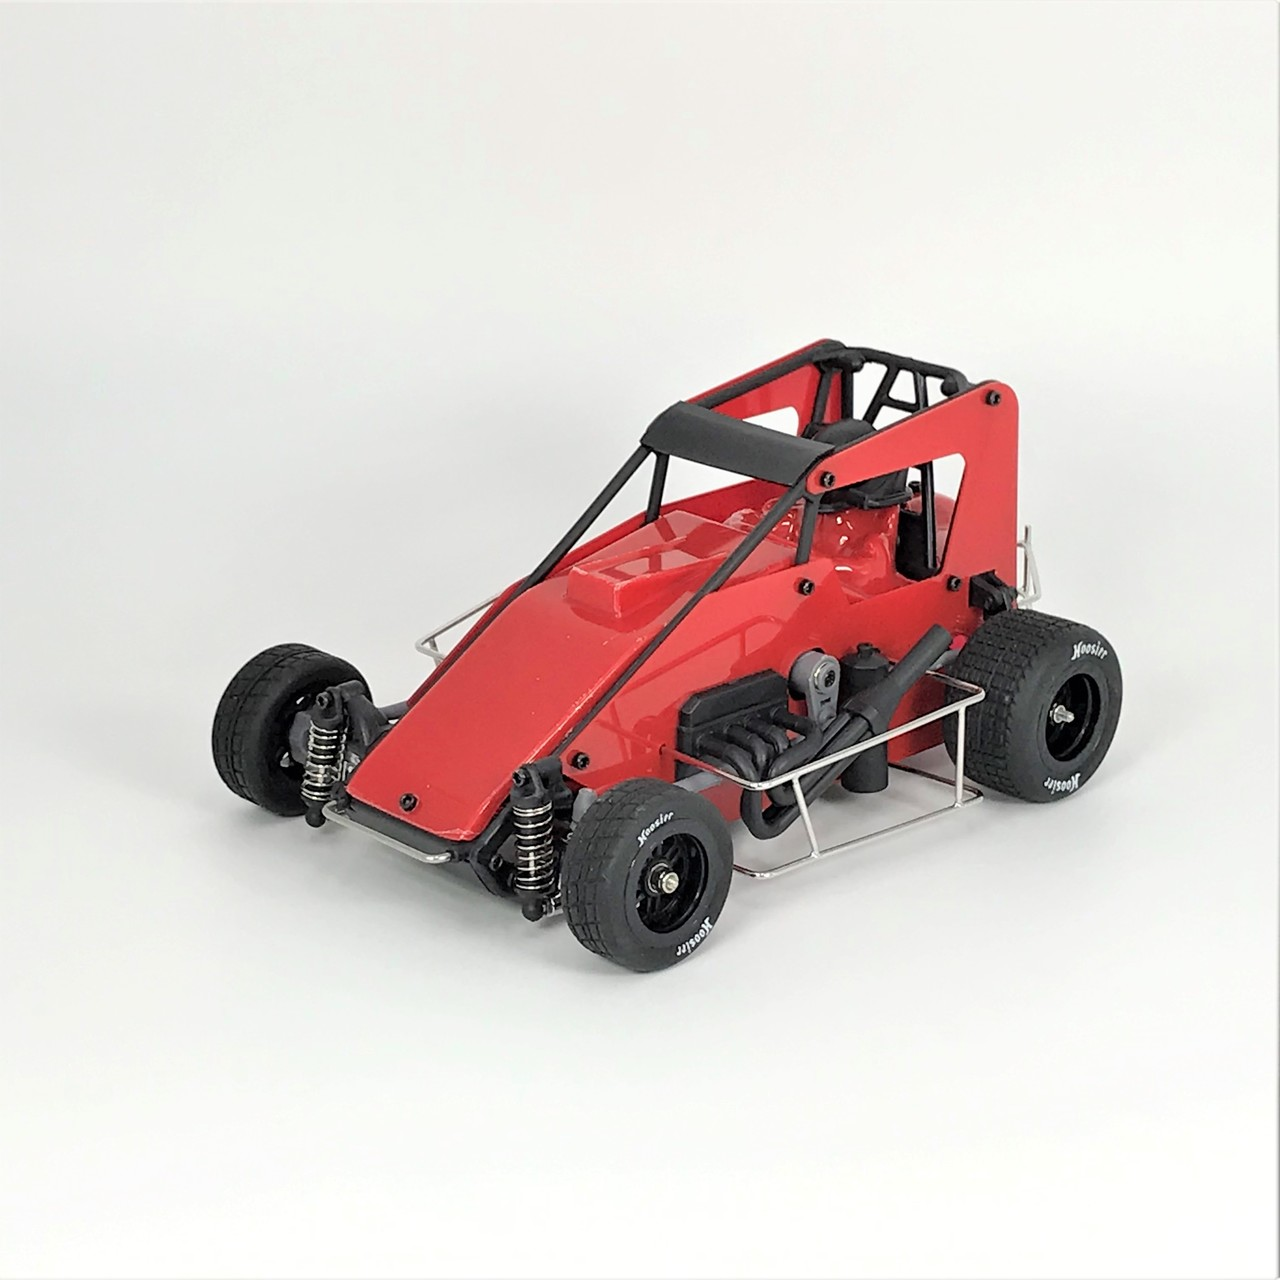 1RC Racing Releases Their Second-generation Midget Racer